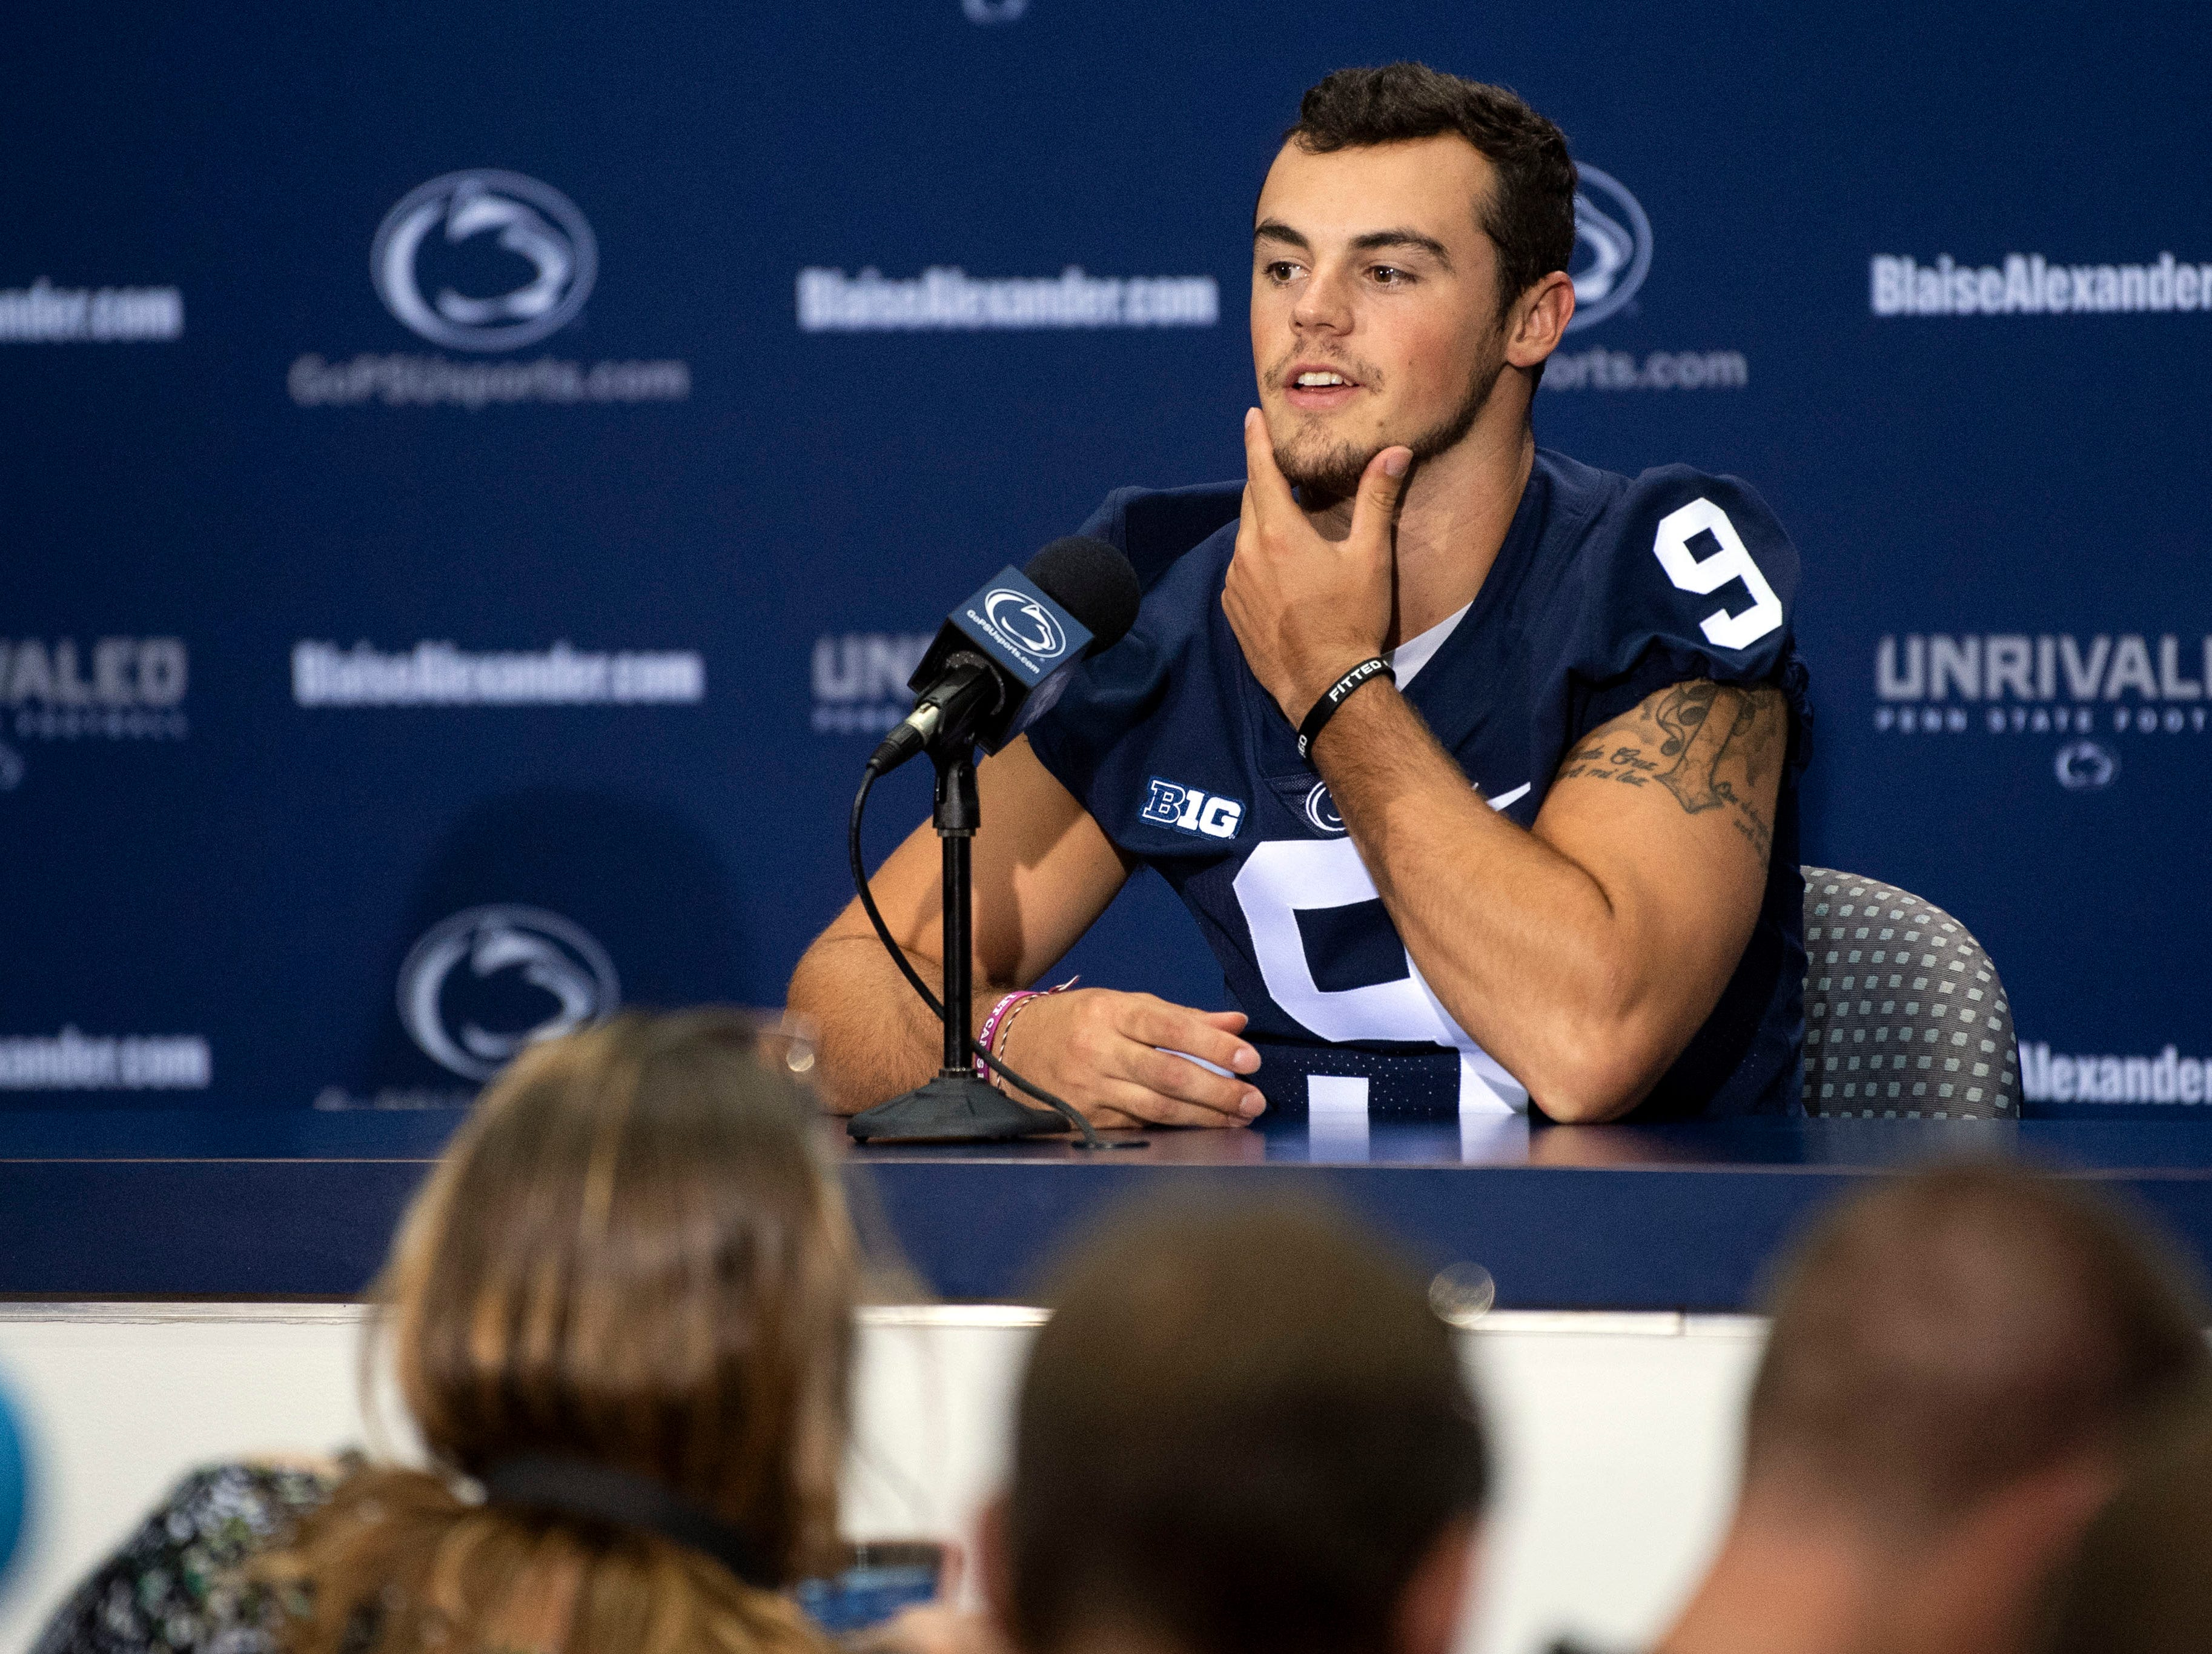 Penn State starting quarterback Trace McSorley jokes about his facial hair during media day at Beaver Stadium on Saturday, August 4, 2018.